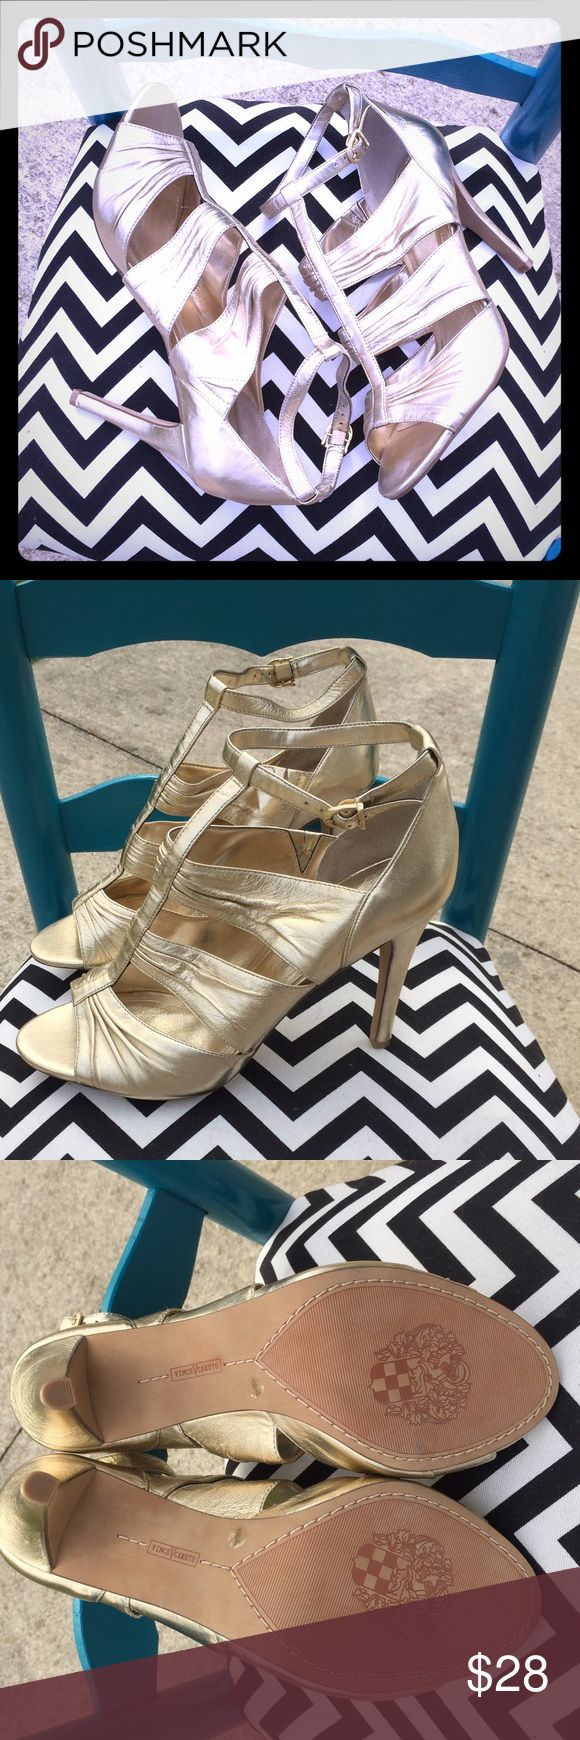 NWOB Vince CAMUTO gold open toe heels In excellent condition never worn! Vince Camuto Shoes